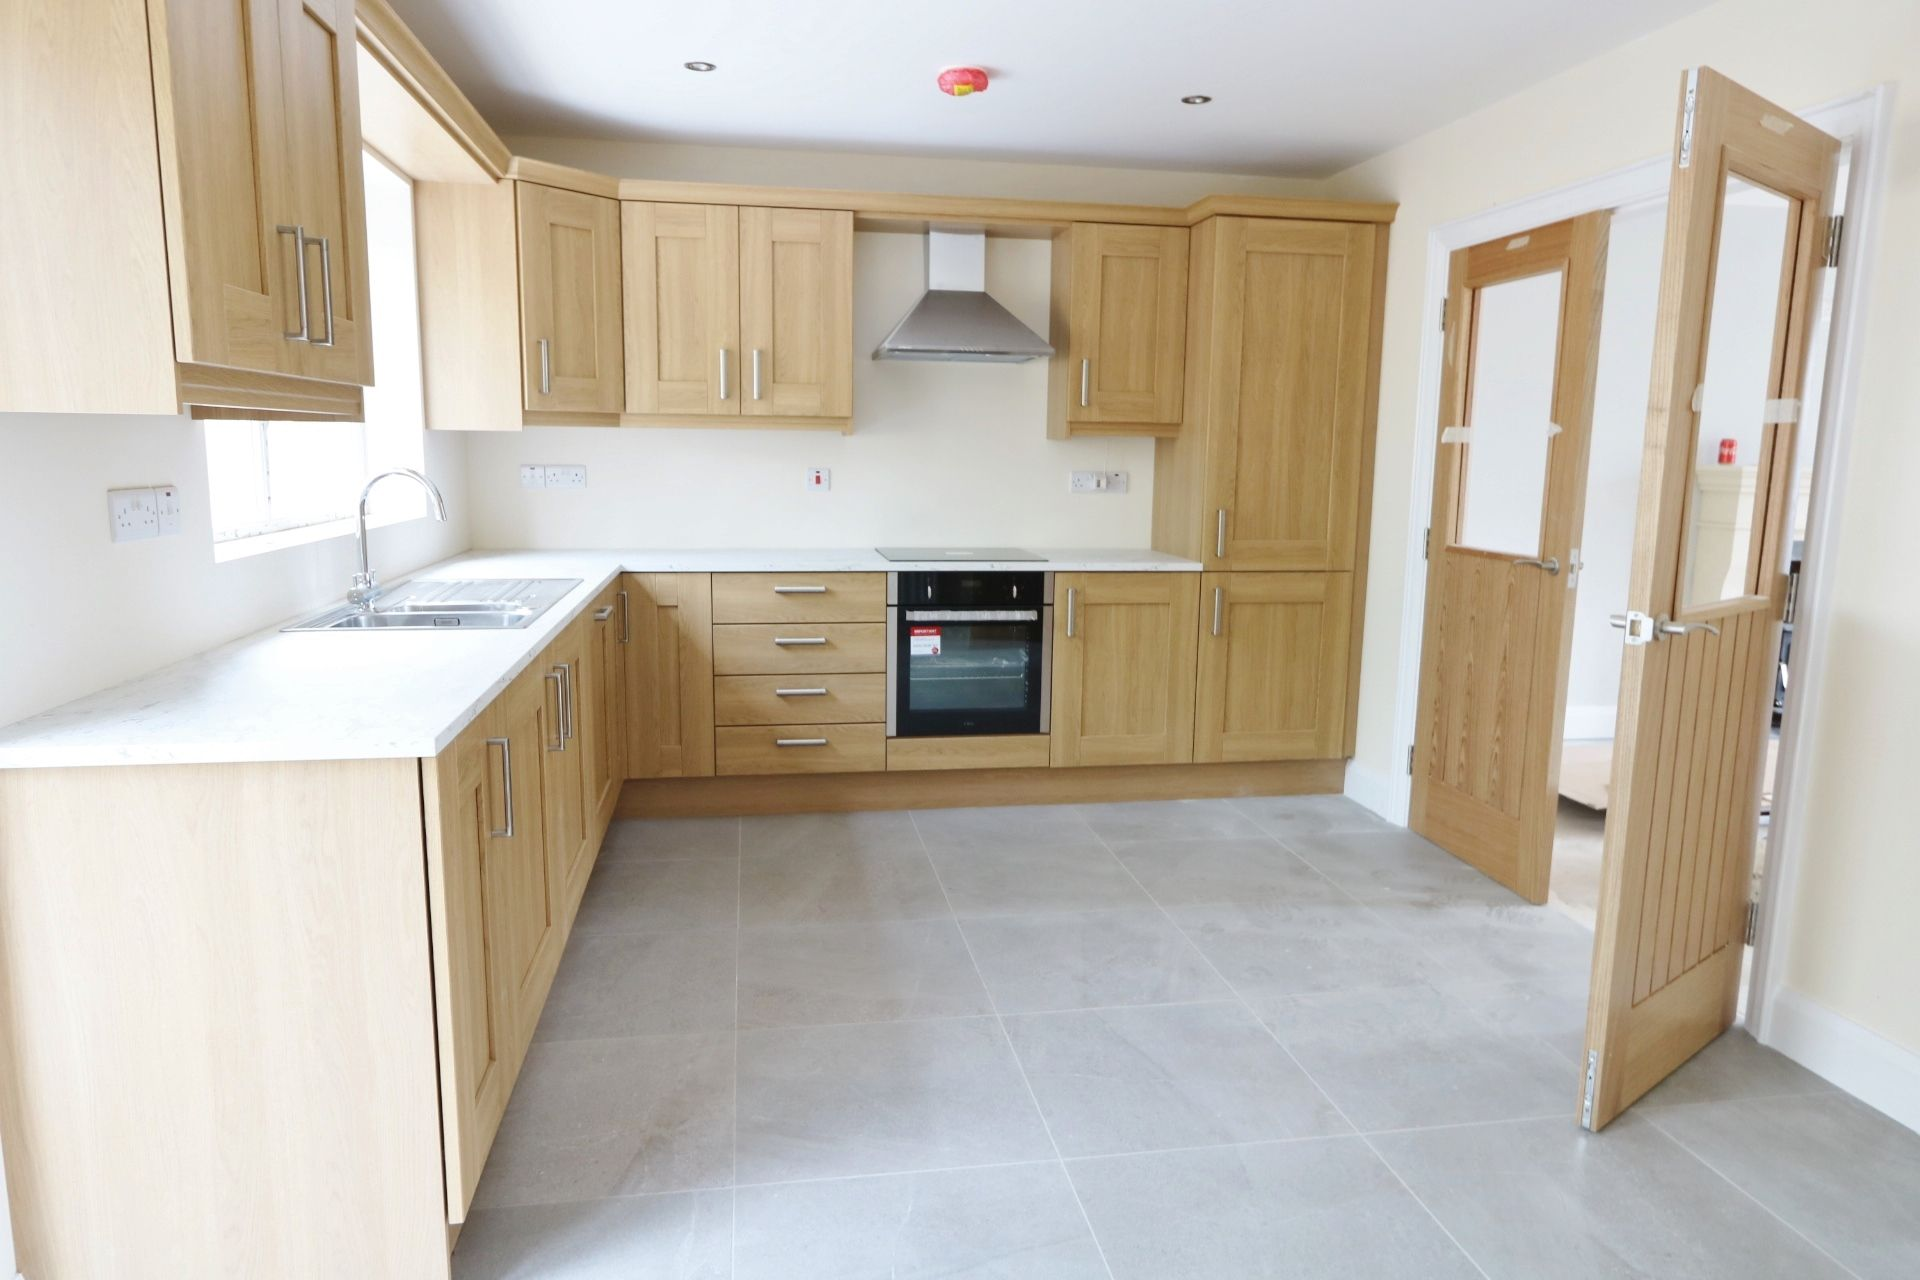 3 bedroom semi-detached house For Sale in Milltown,  Antrim - Photograph 4